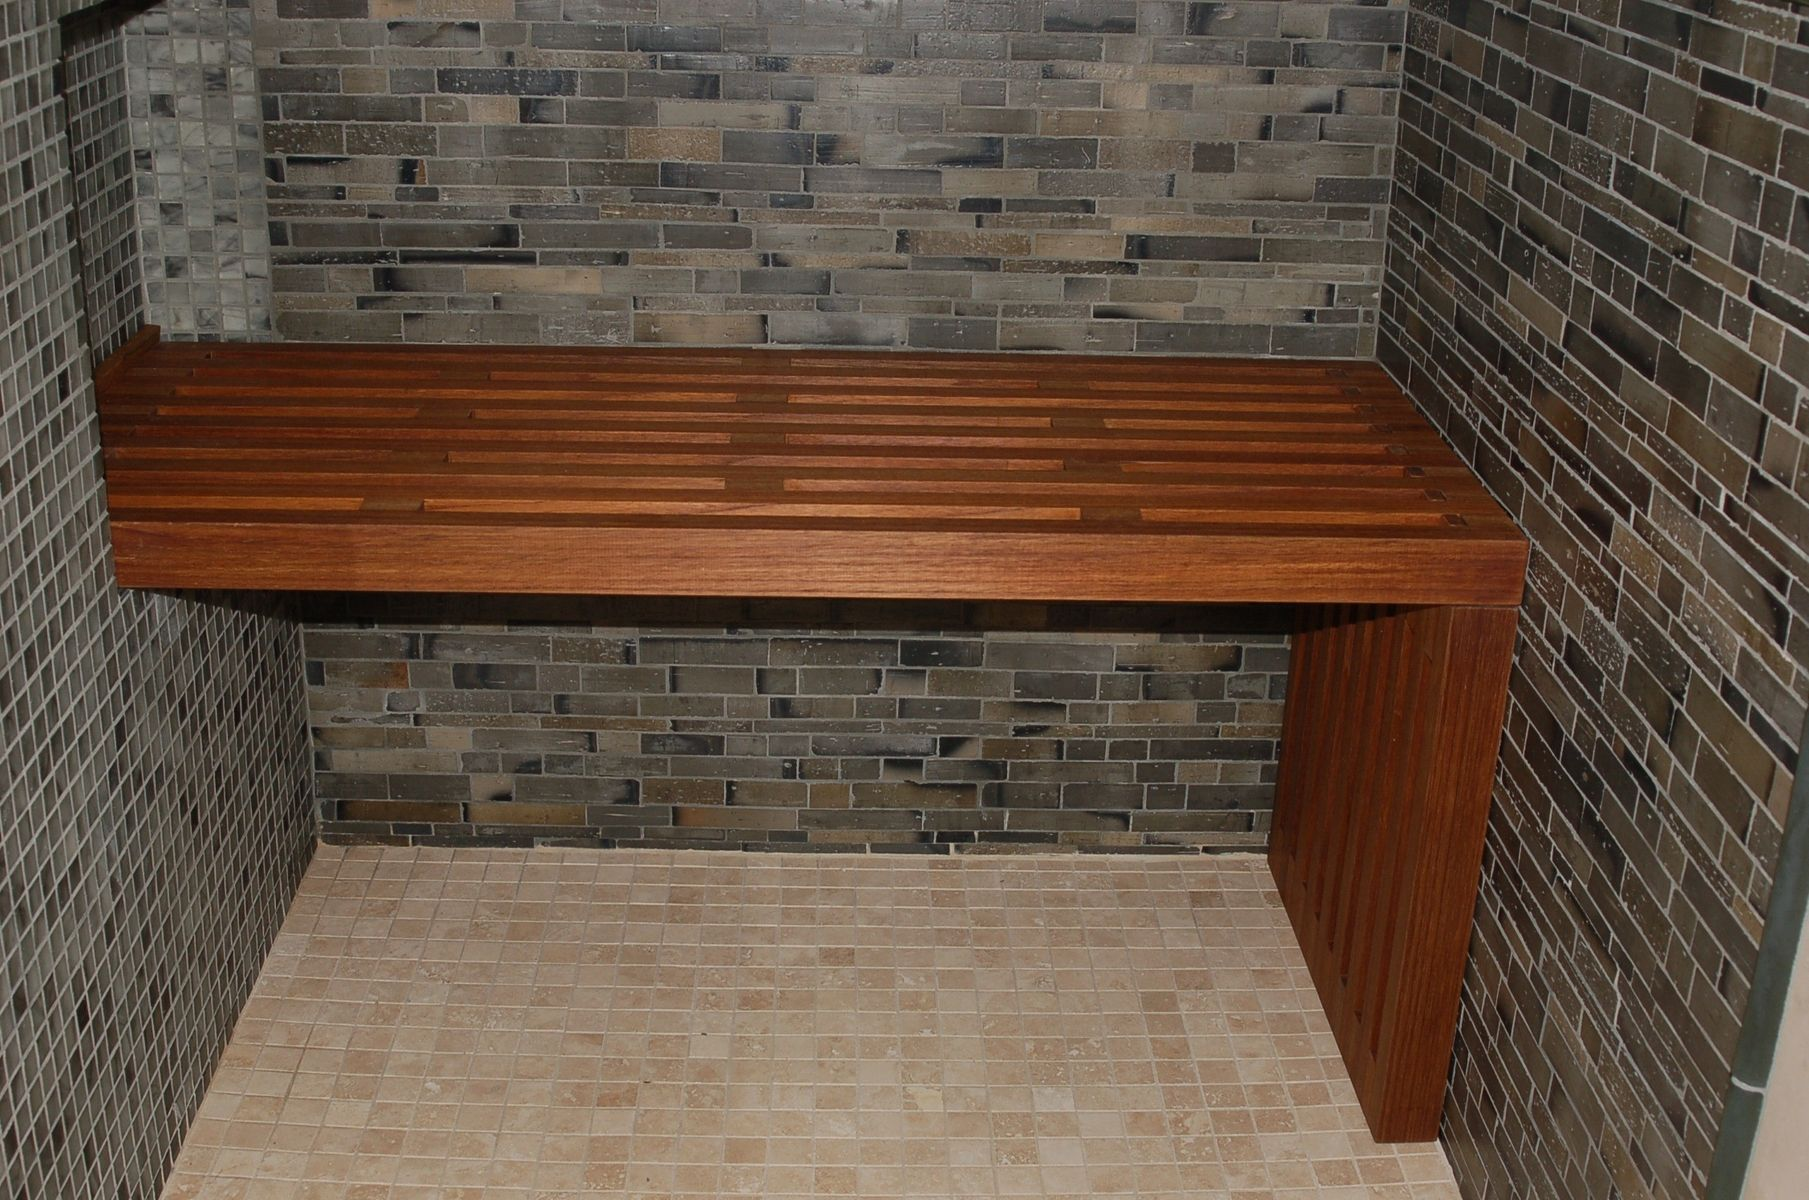 Teak Bench Built Into Wall For Support On One Side Teak Shower